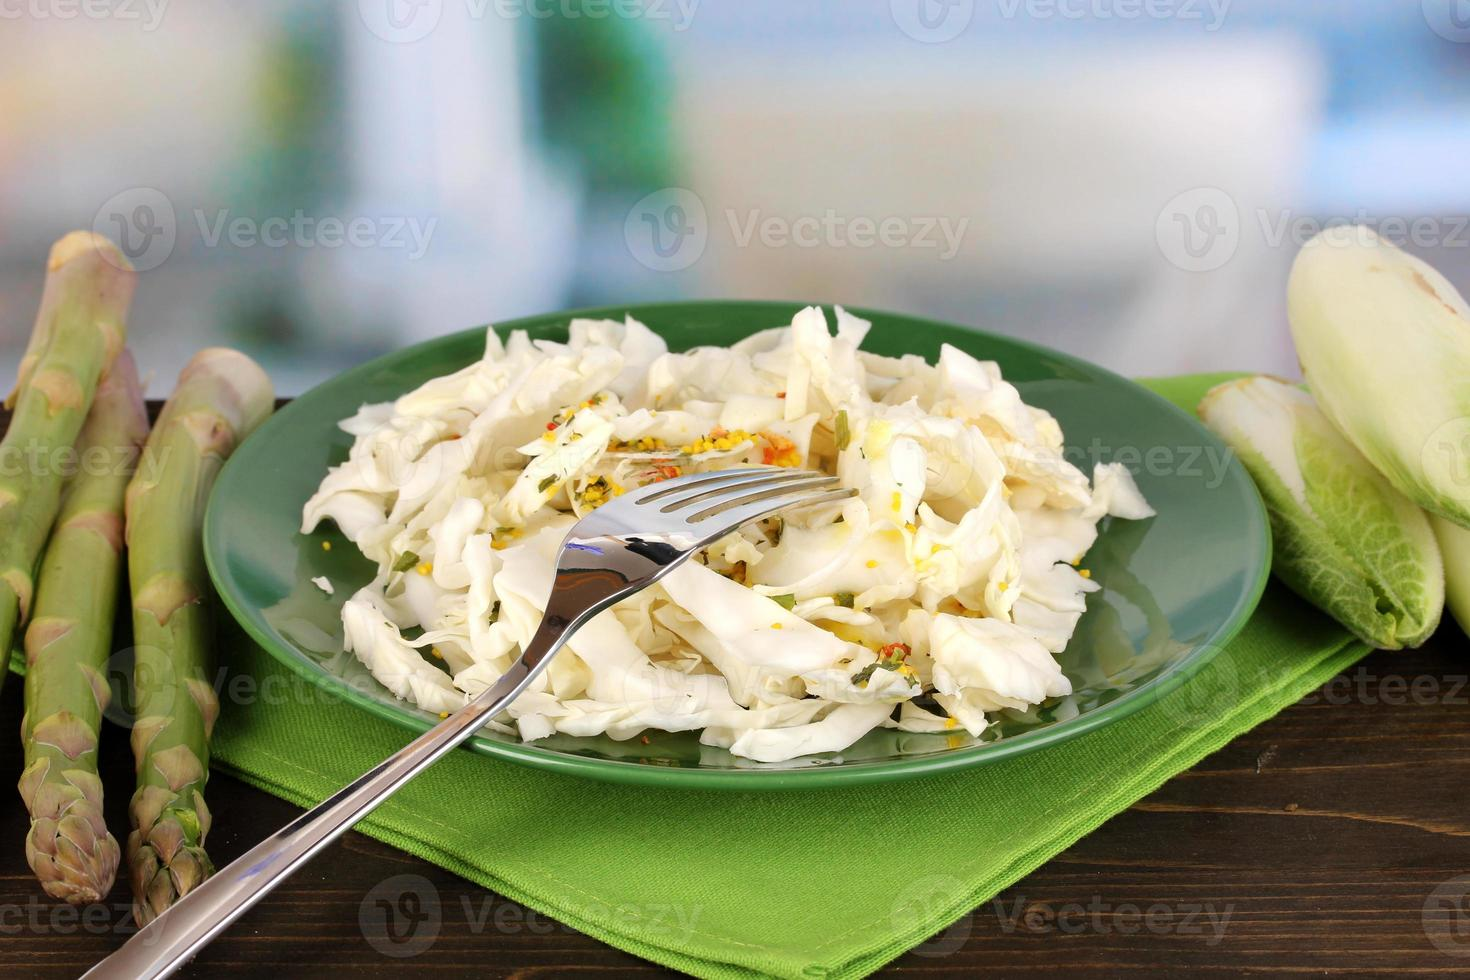 Plate with coleslaw, asparagus and chicory on table photo